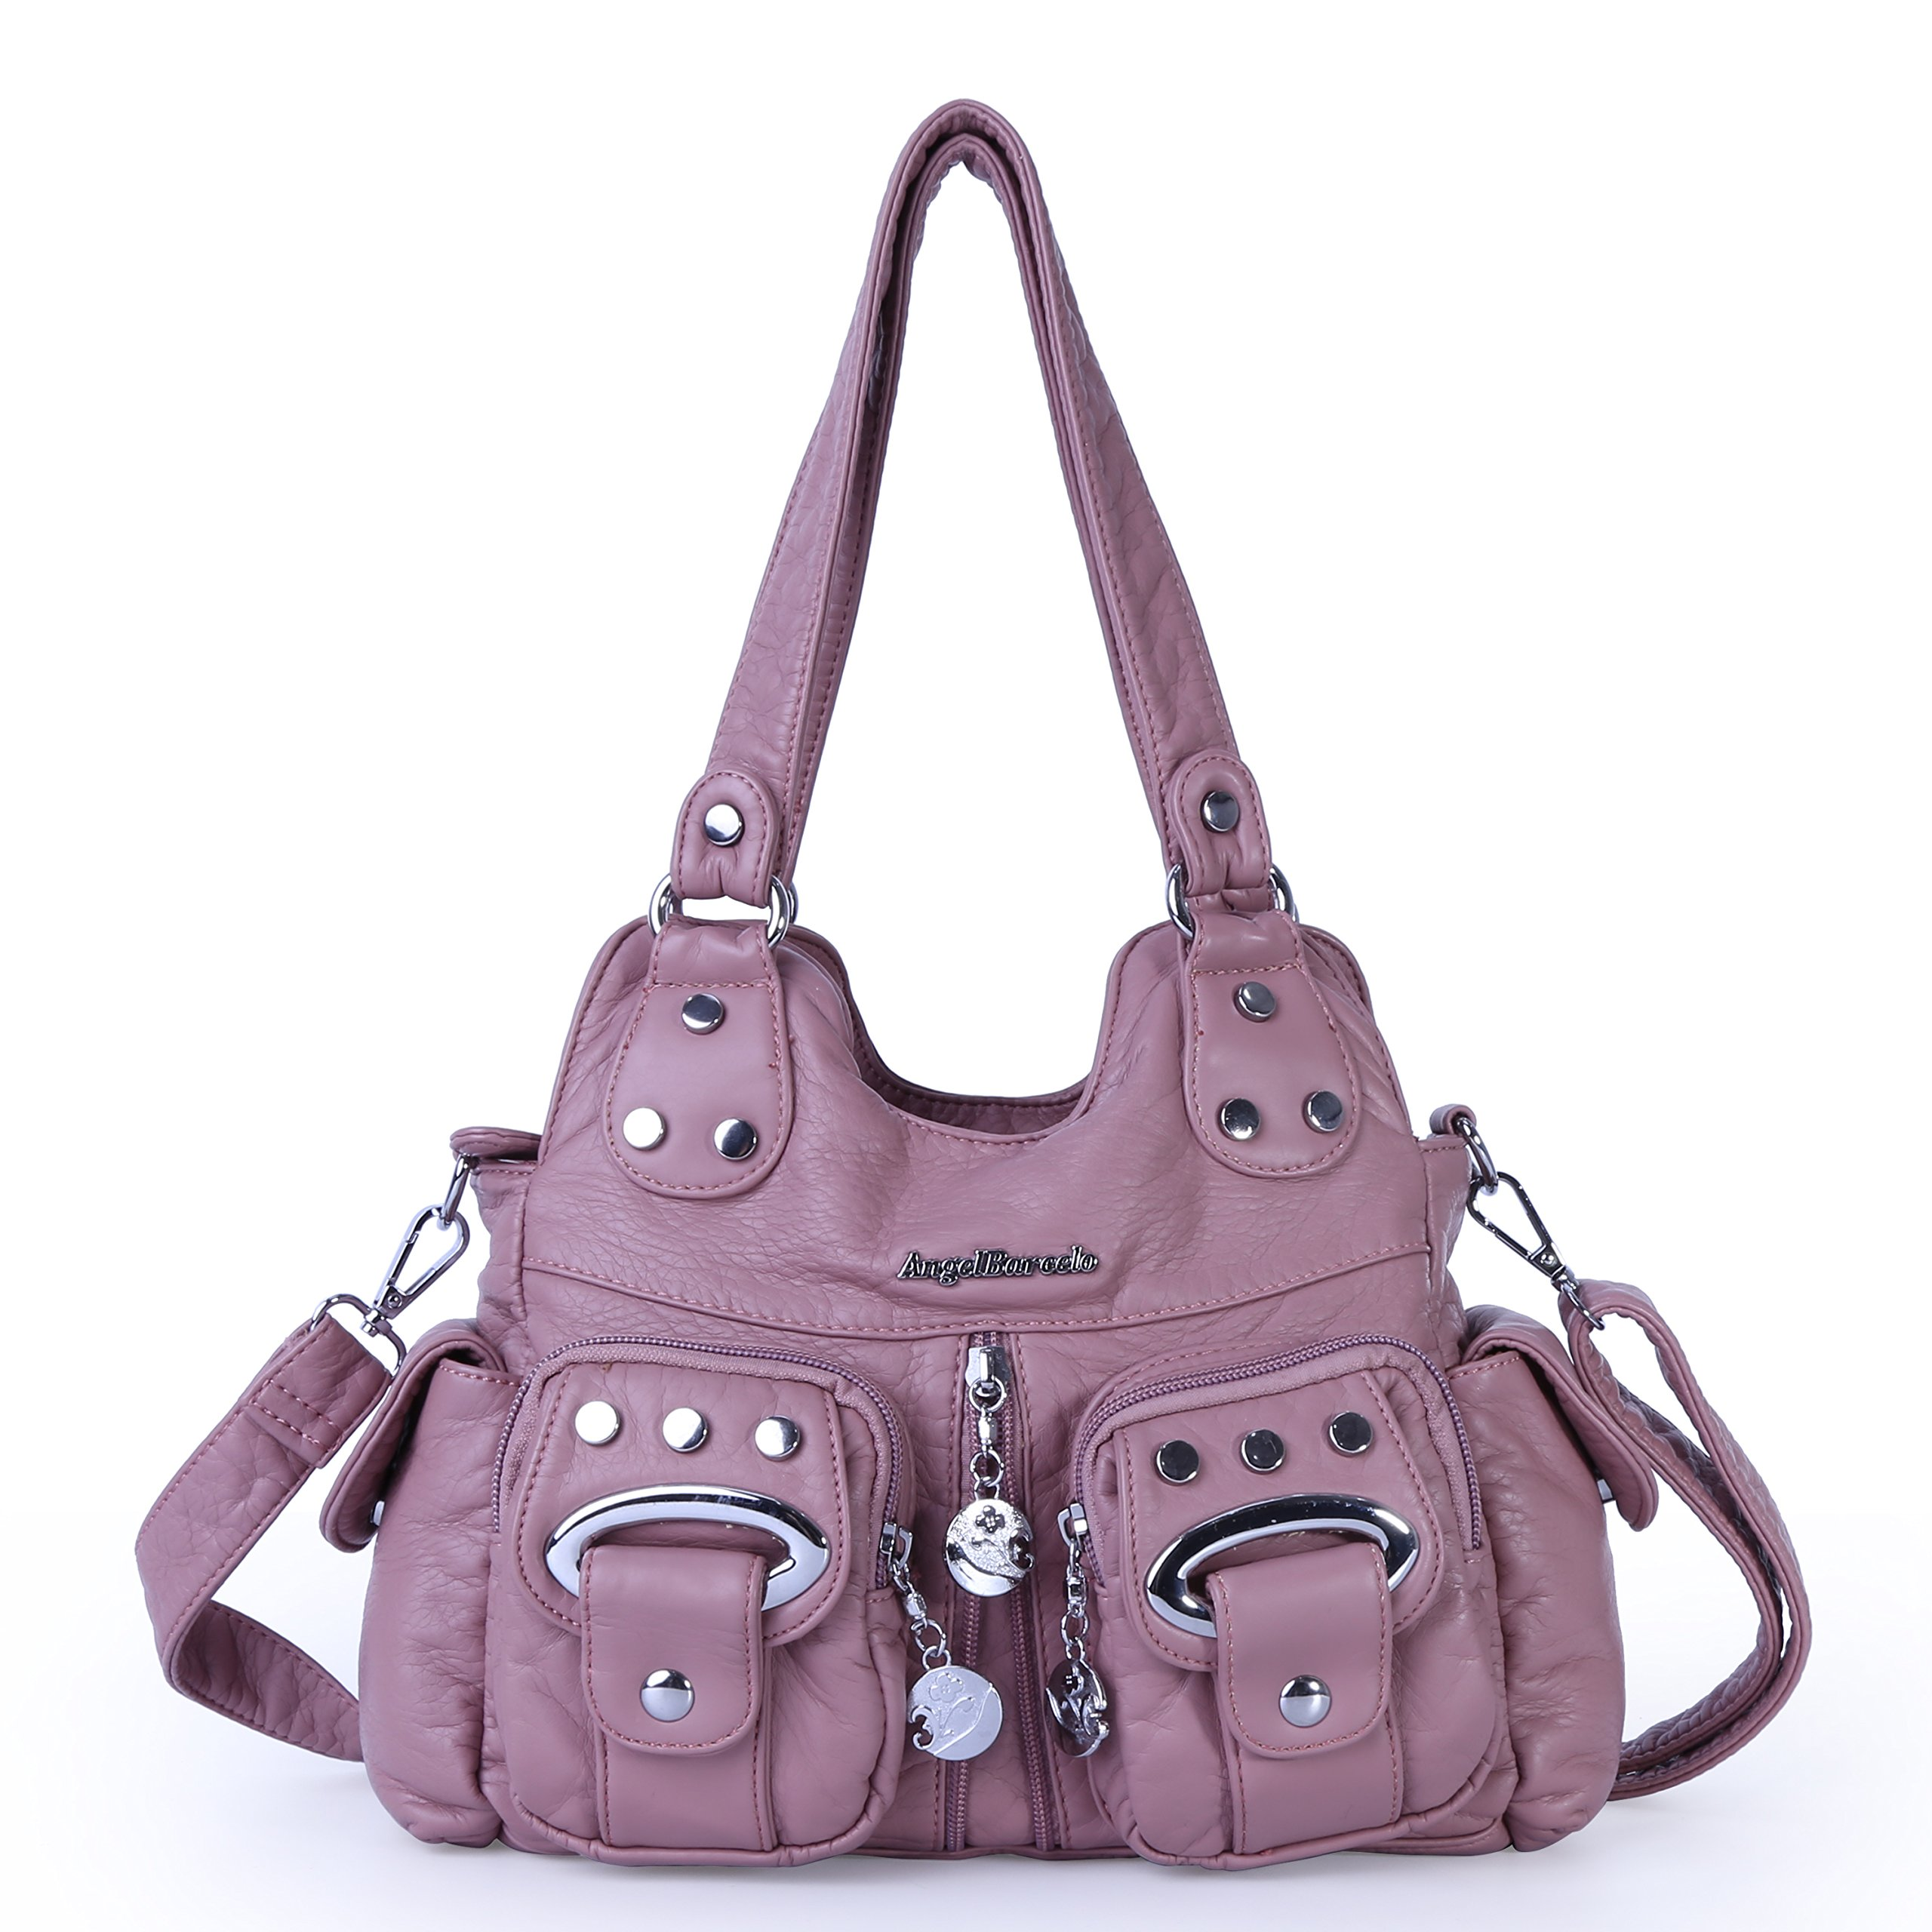 Angel Barcelo 3 Top Zippers Multi Pockets Purses and Handbags Leather Shoulder Bags Backpack Women (Pink)